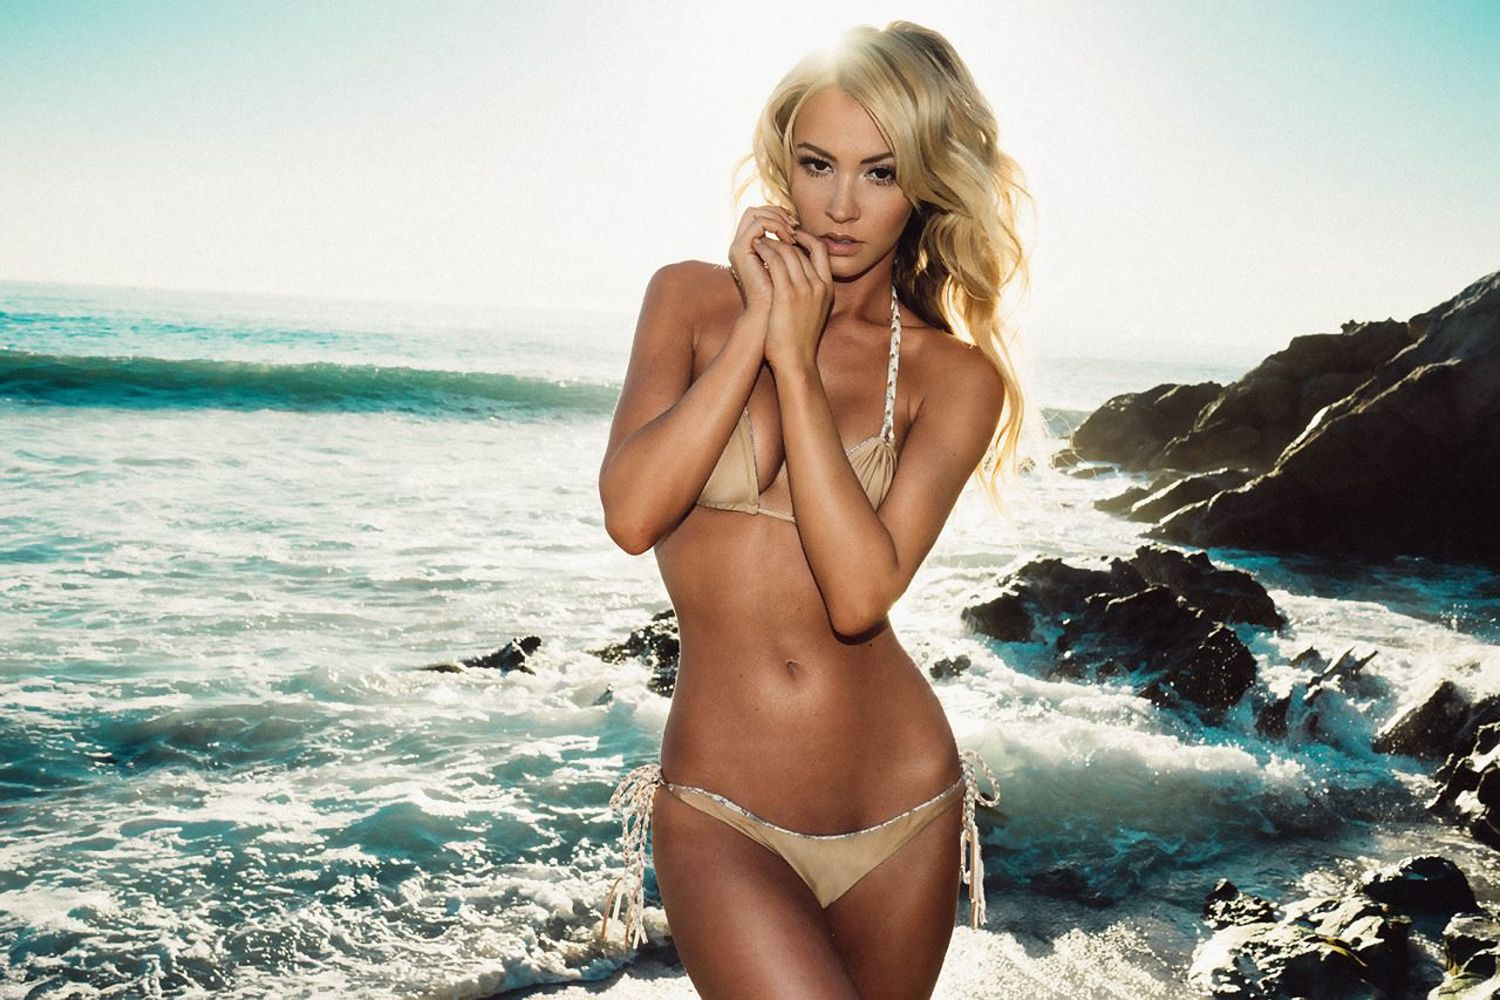 Bryana Holly Images